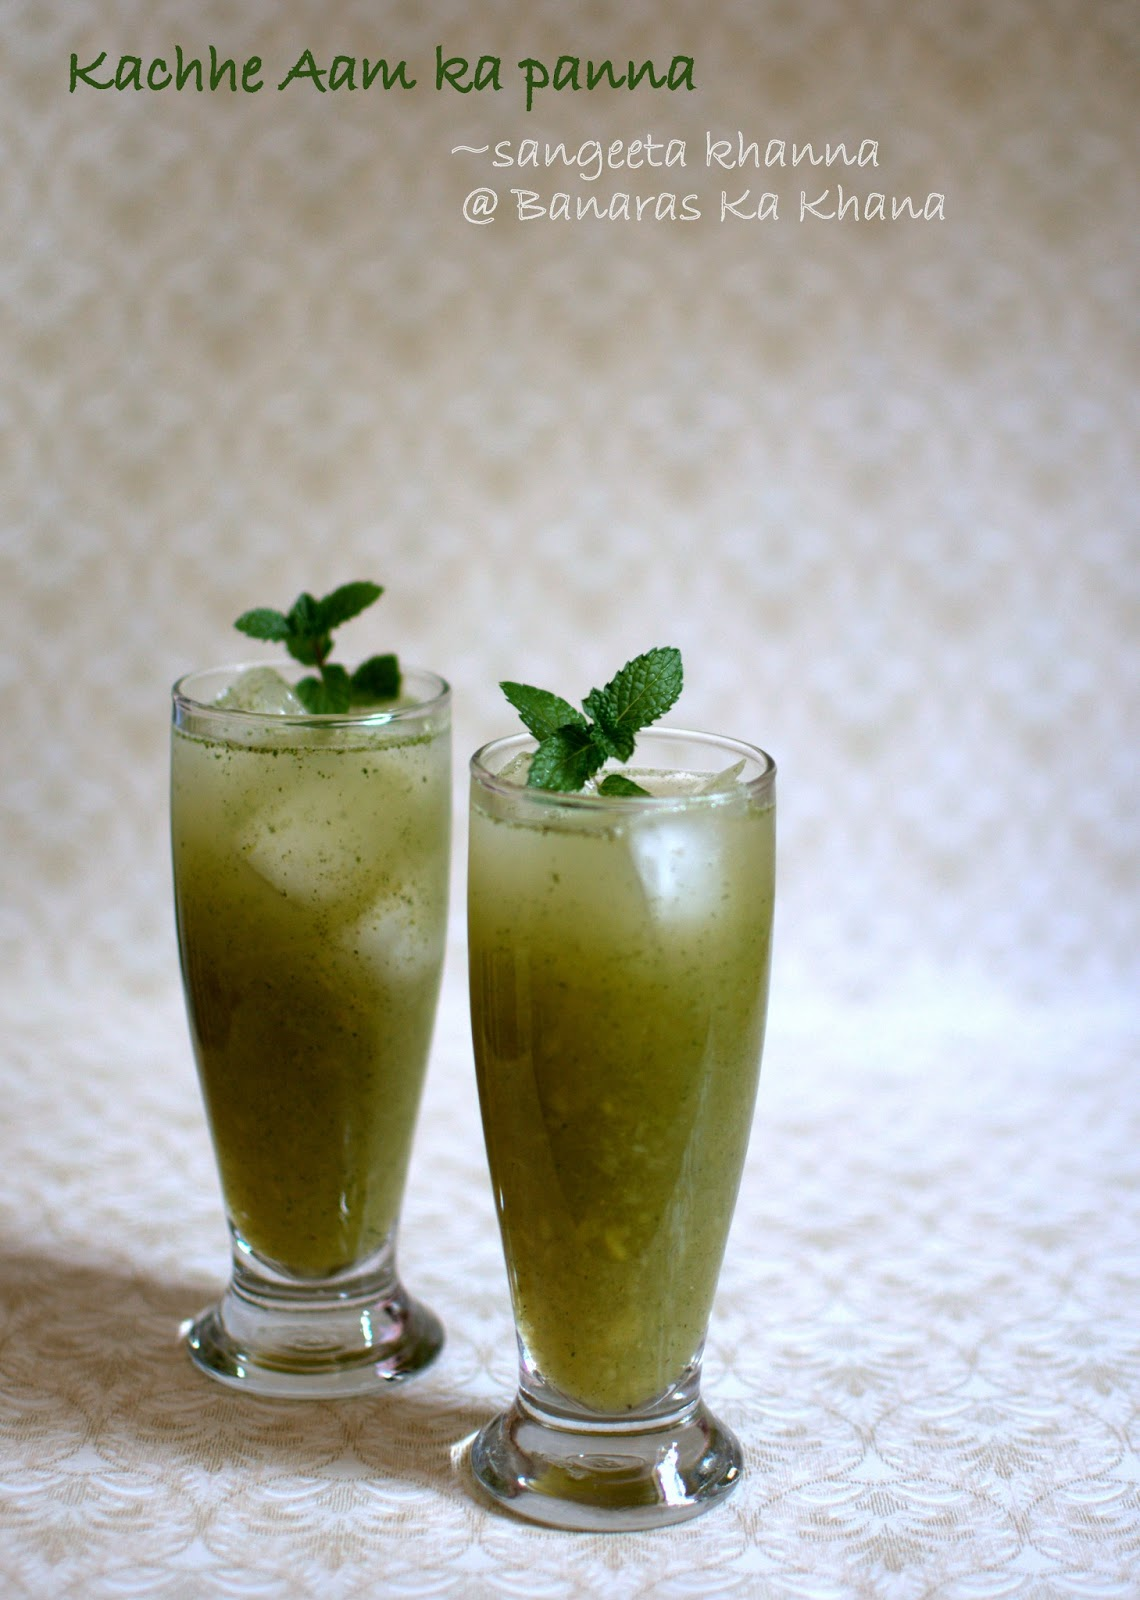 kachhe aam ka panna : preparing aam panna concentrate to last a week ...